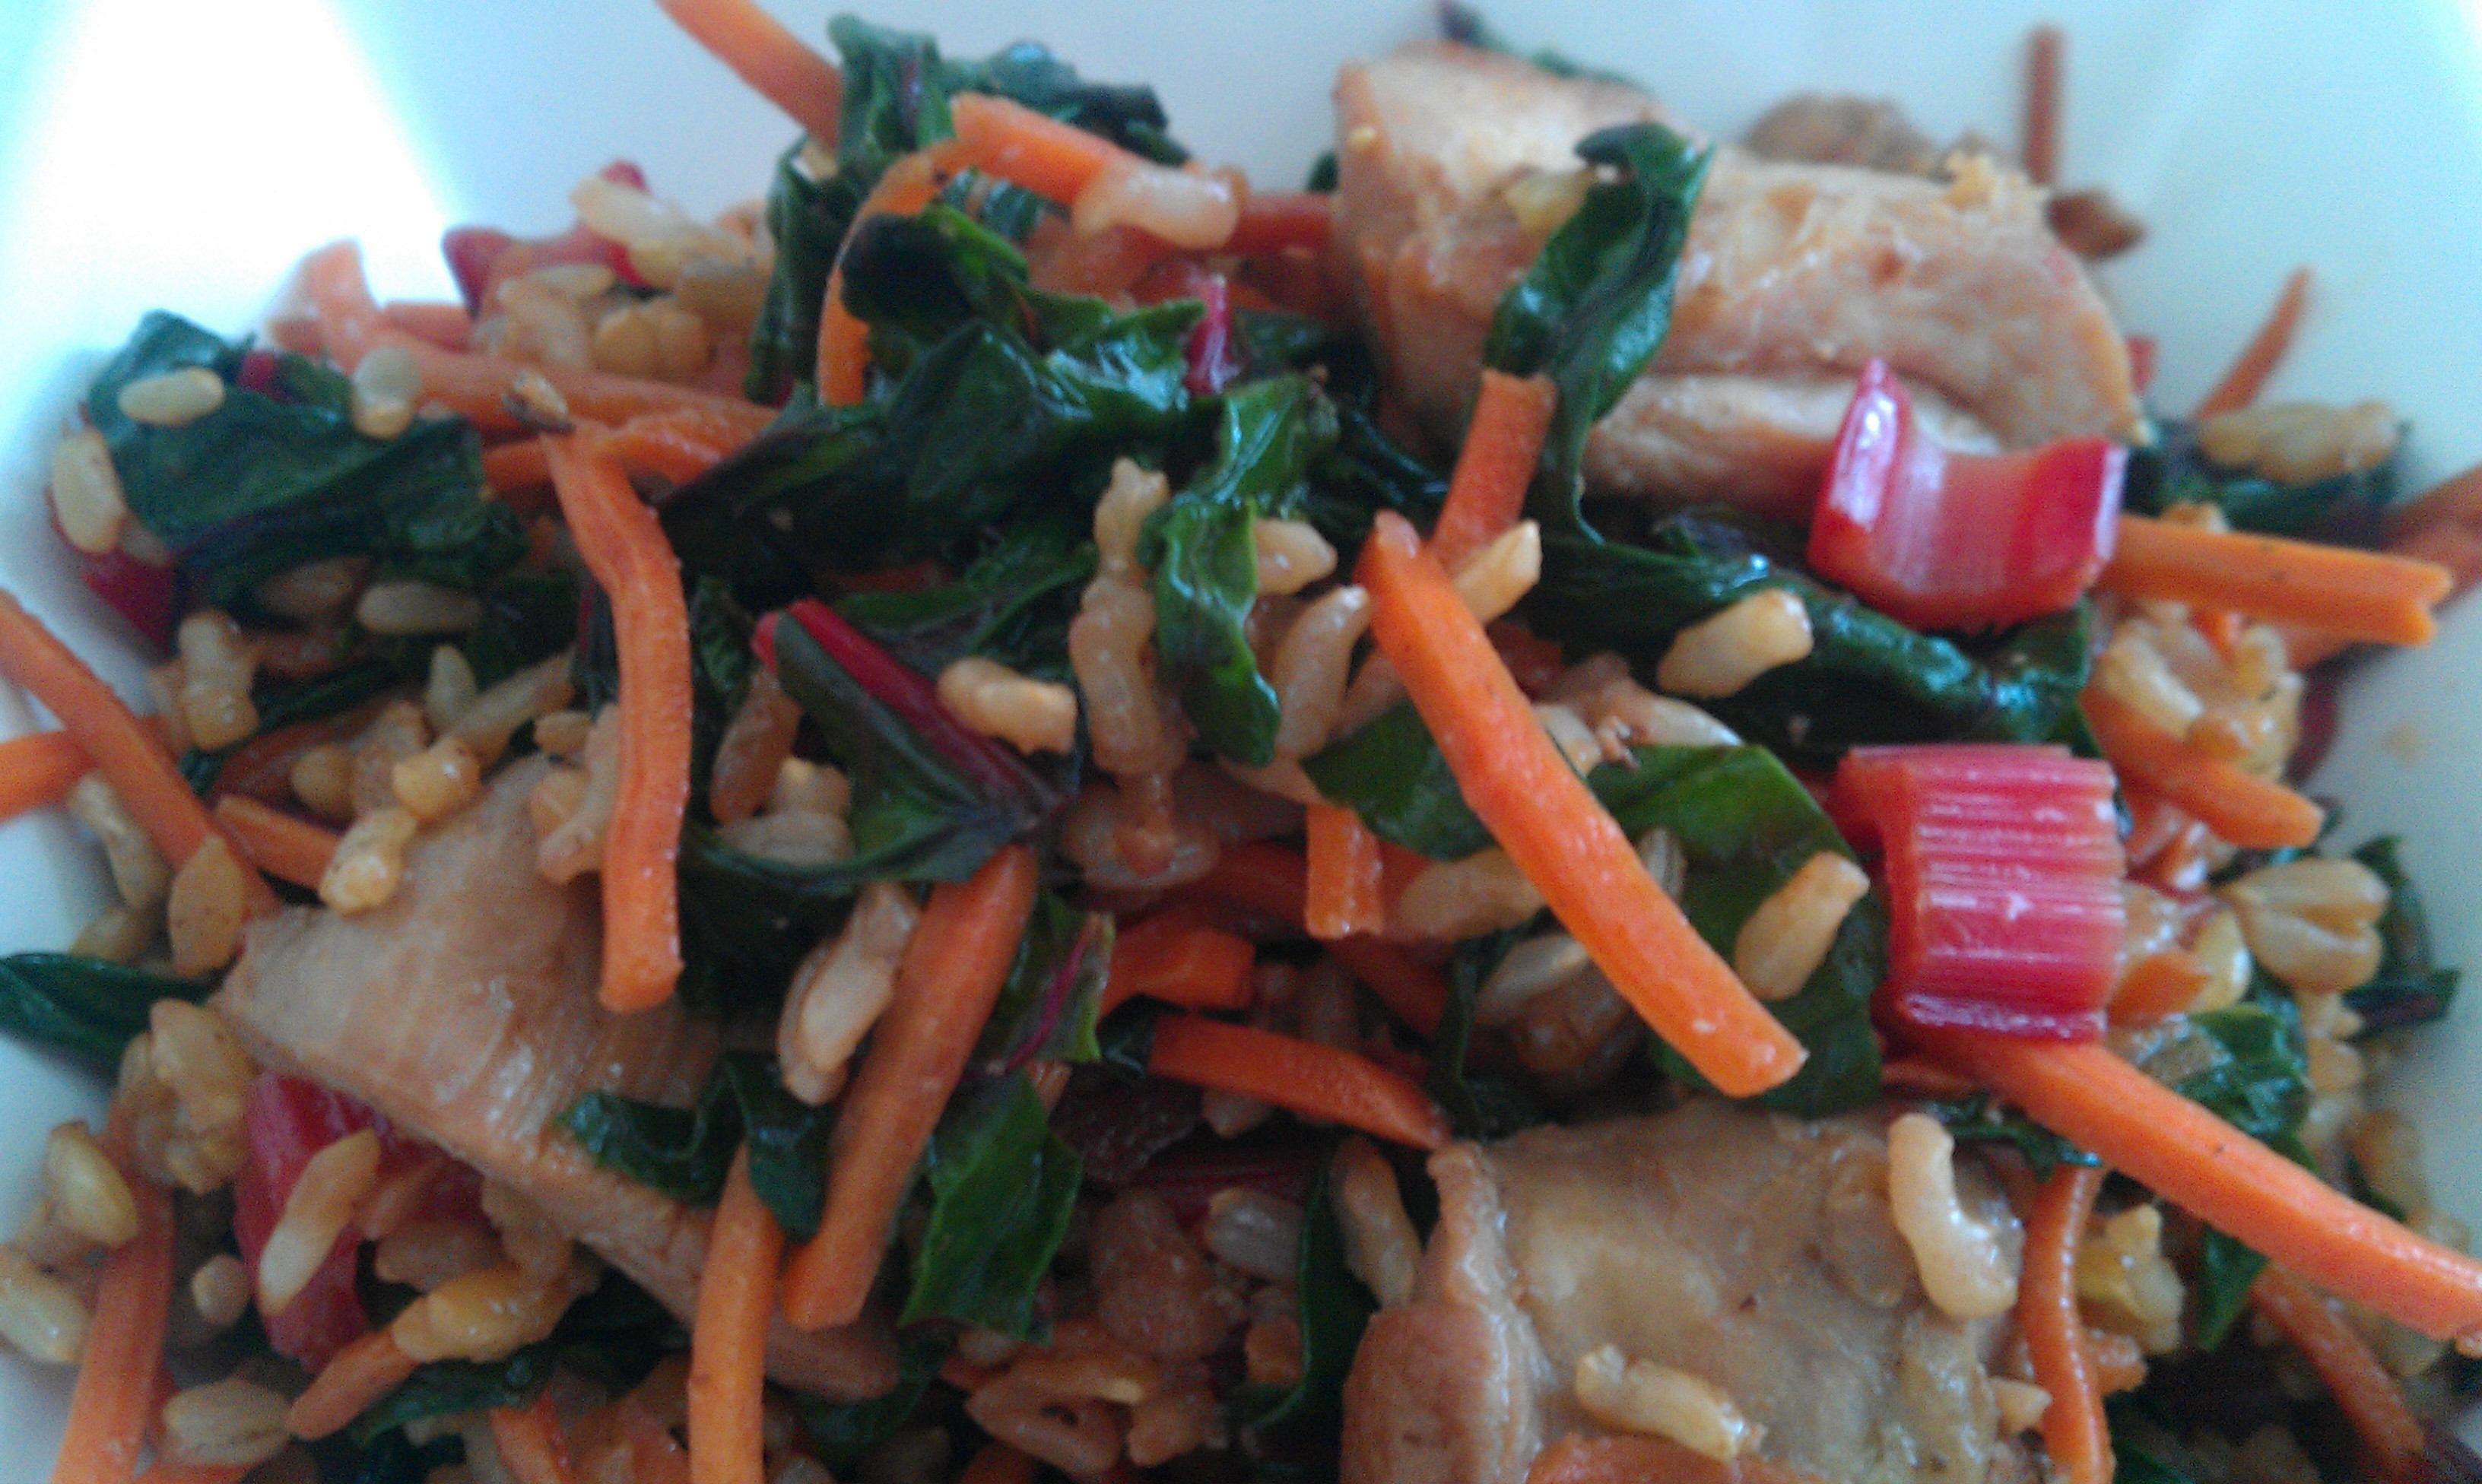 http://www.blissfulkitchenblog.com/easy-chicken-b…chard-stir-fry